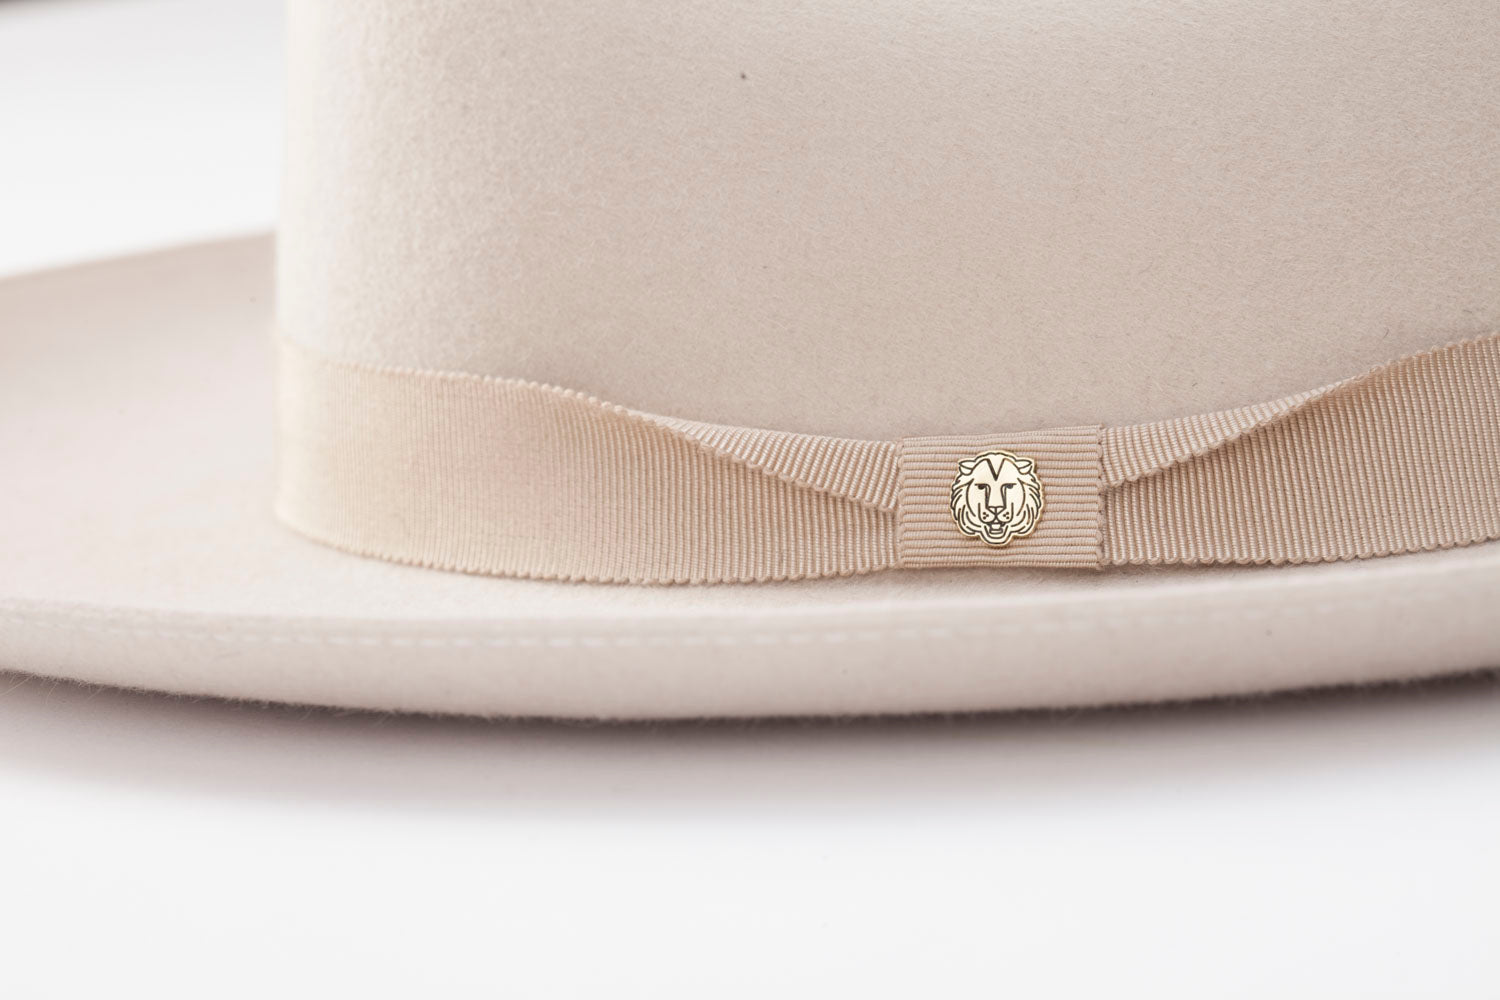 TAU Dallas ivory hat cowboy kalap fur felt decorated with tonal petersham and lion logo designed in Budapest unisex accessory detail